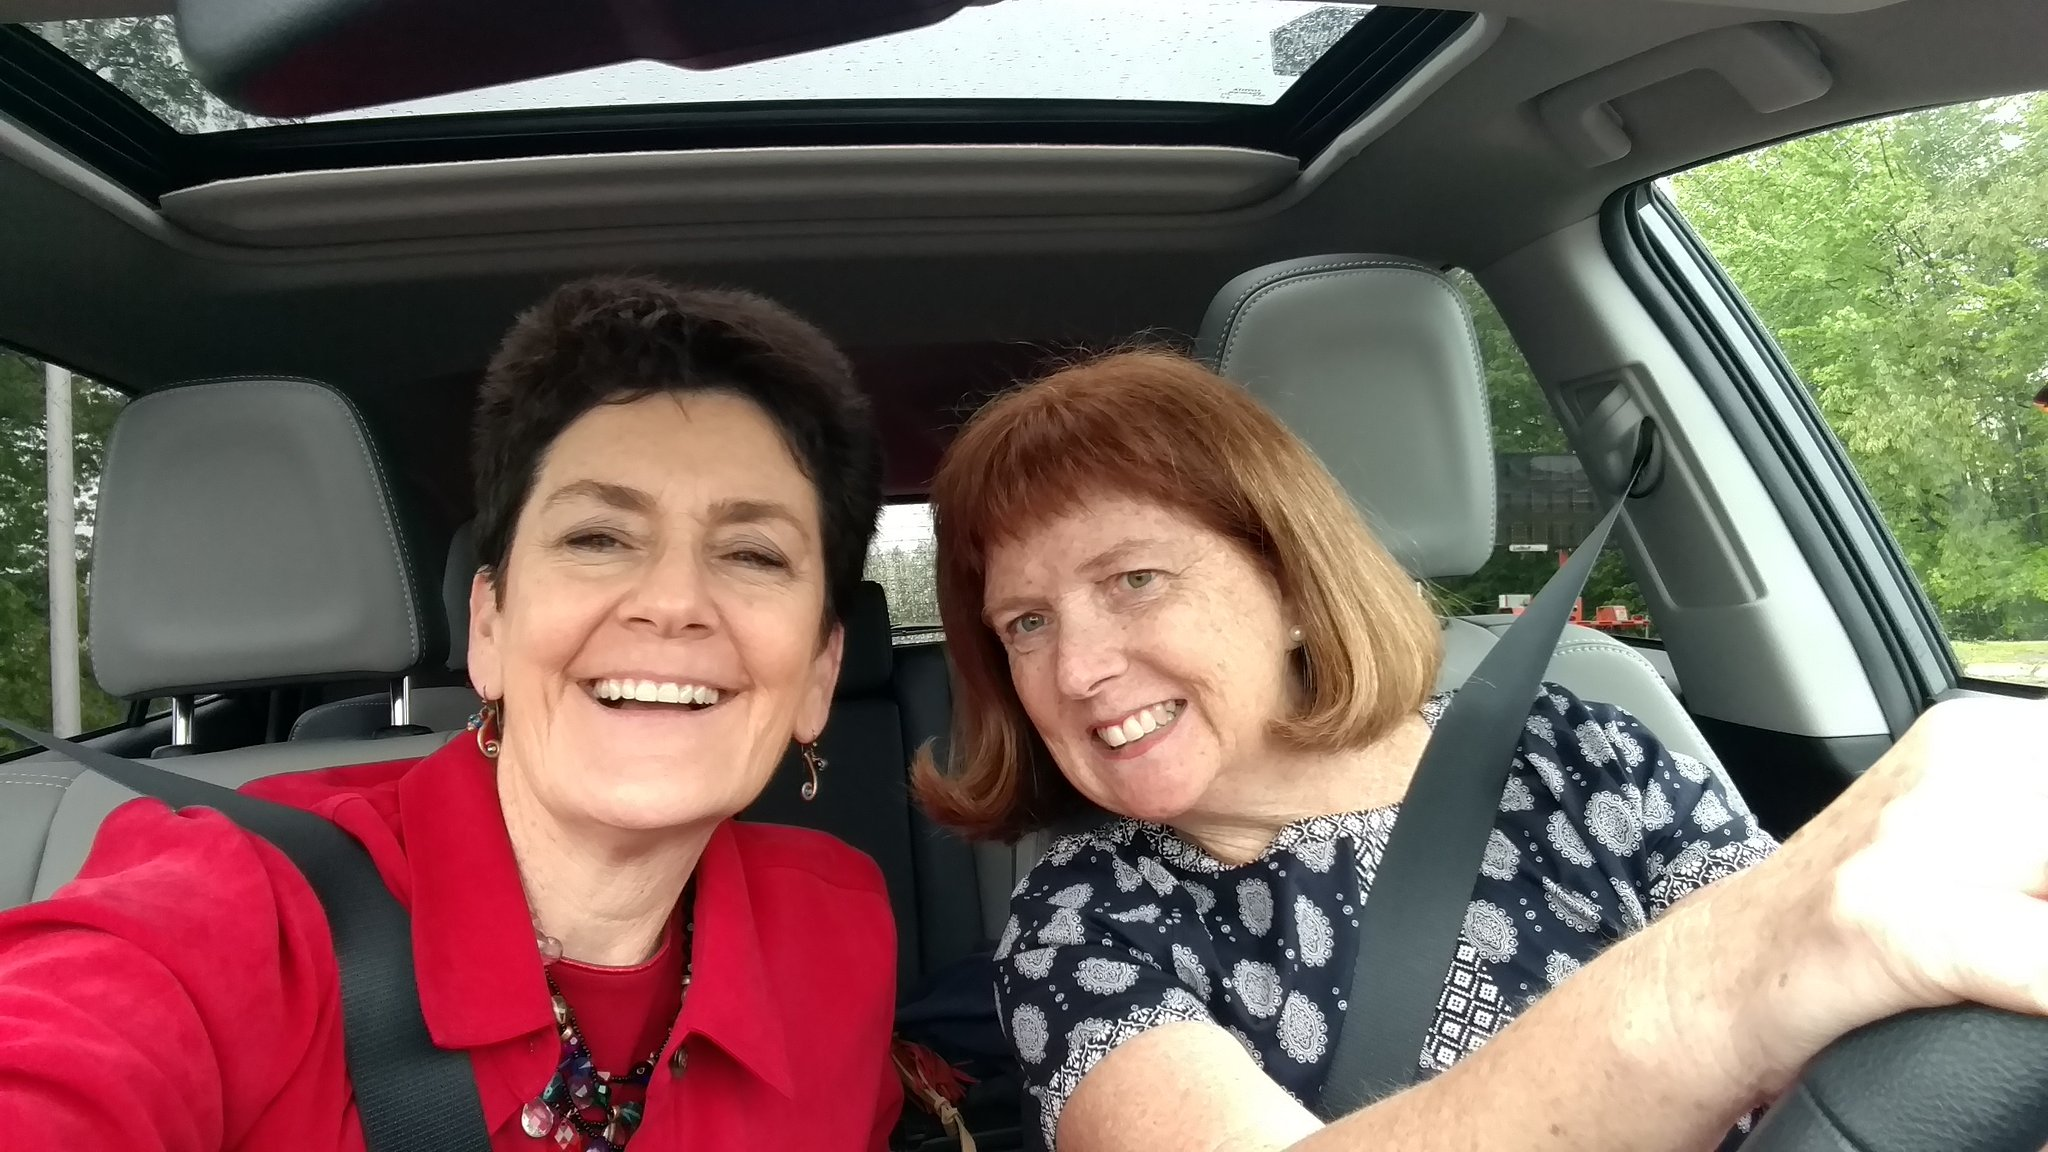 #MHCReunion on our way! #mhc1982 https://t.co/3hrr8WDiNt